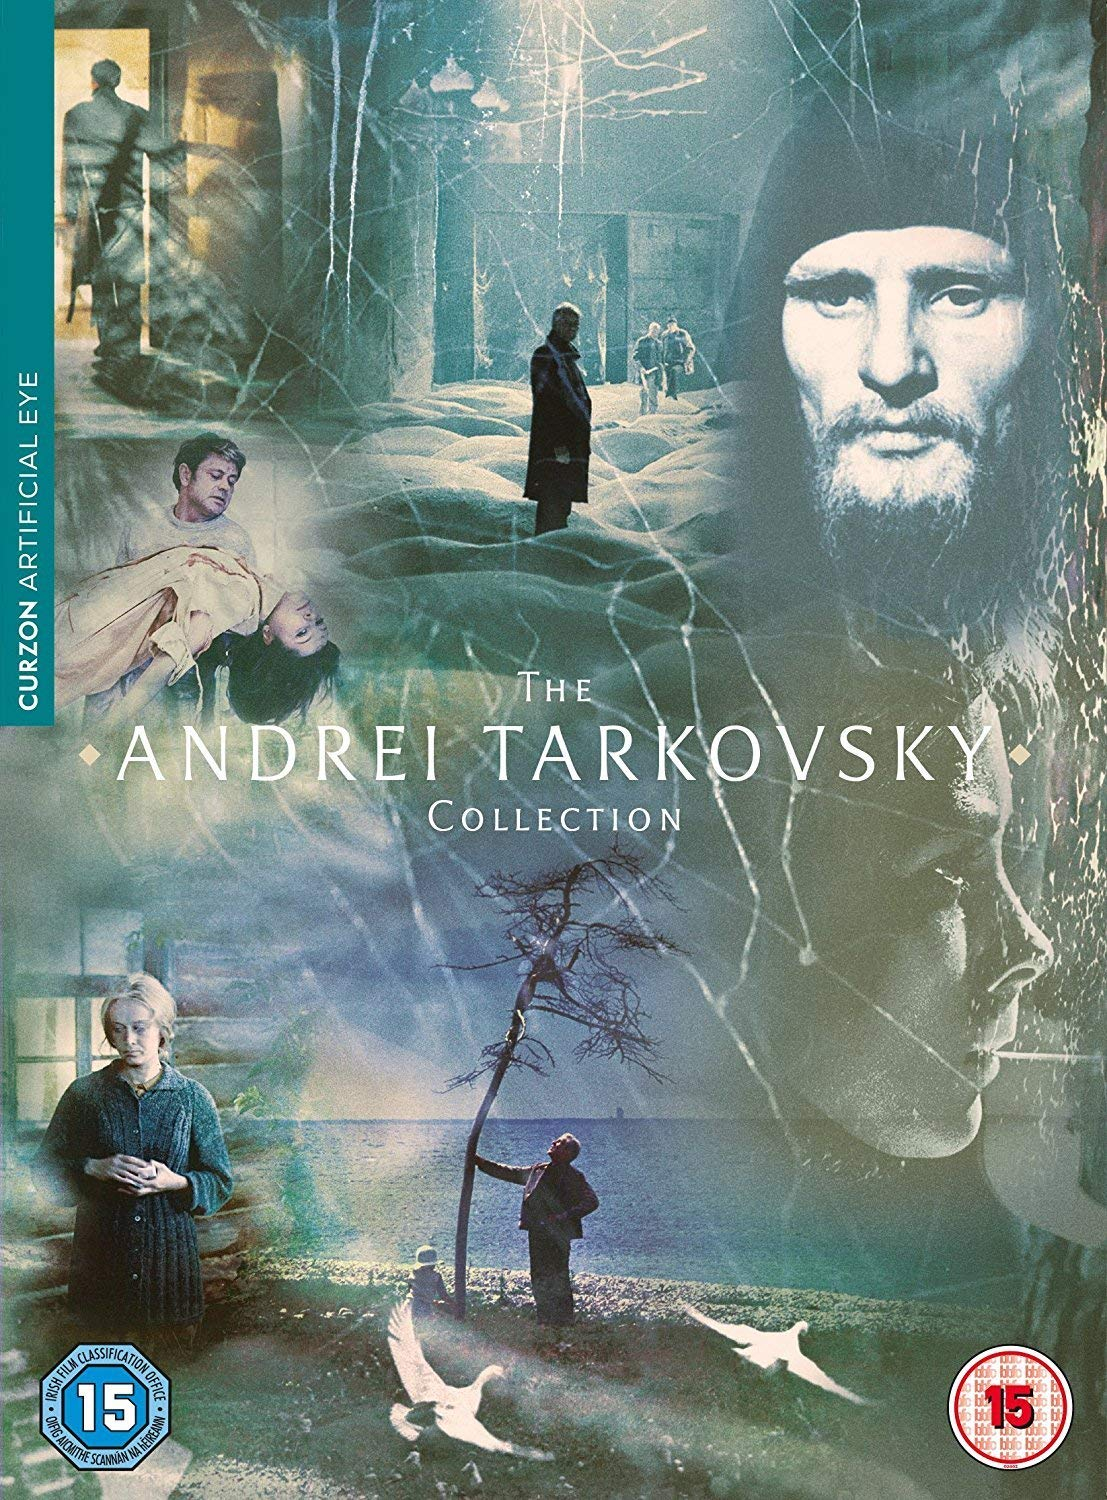 Buy The Andrei Tarkovsky Collection (DVD Box Set)